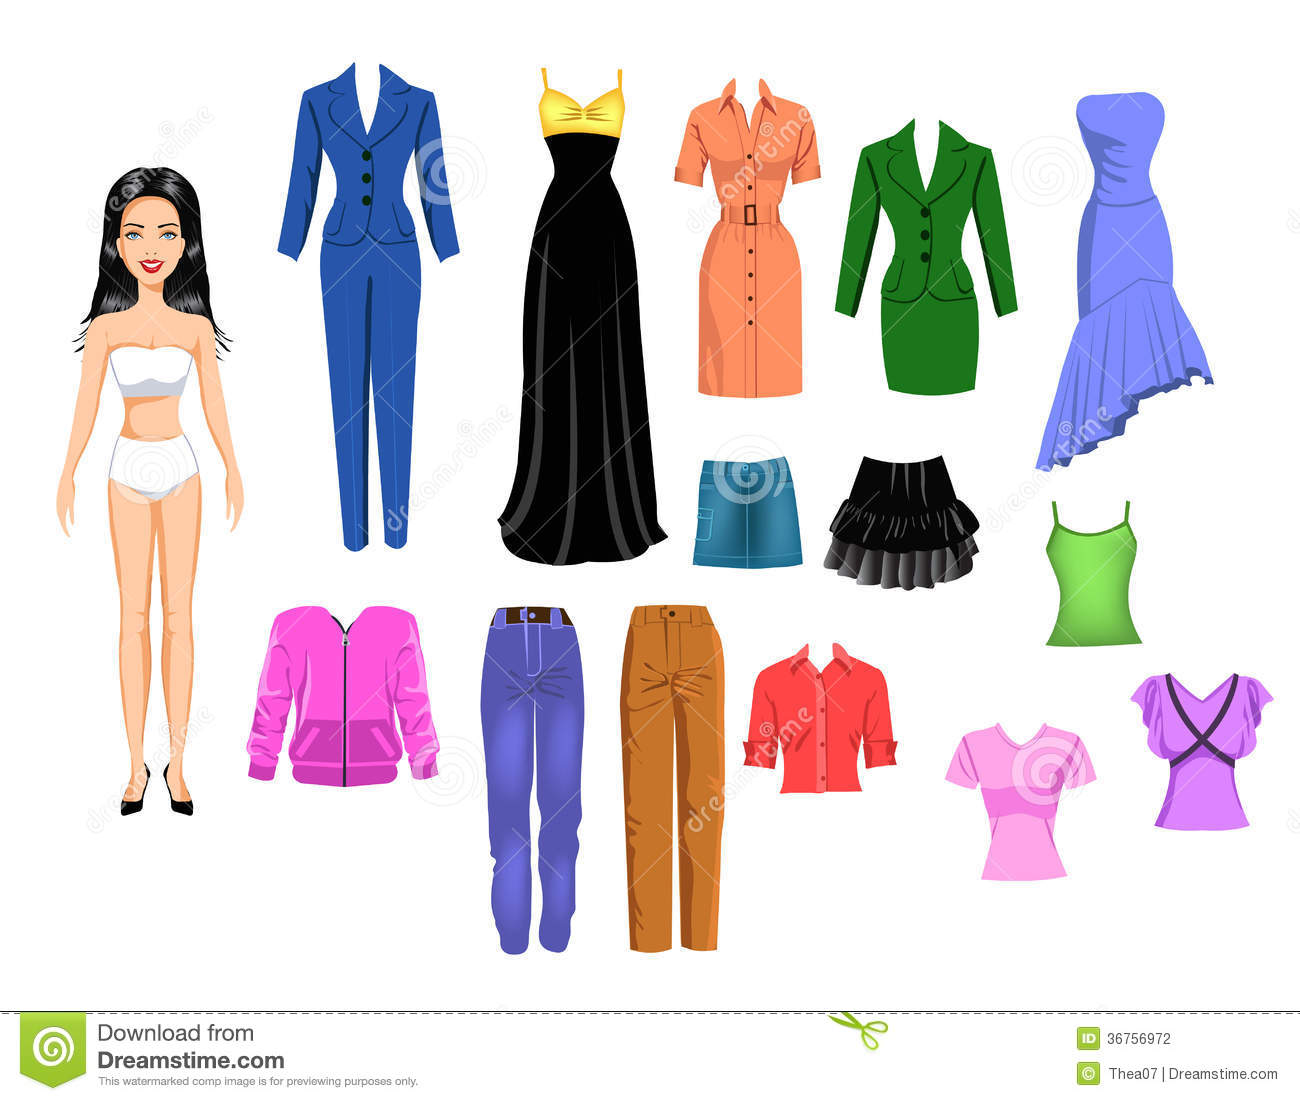 Where to buy dress up clothes